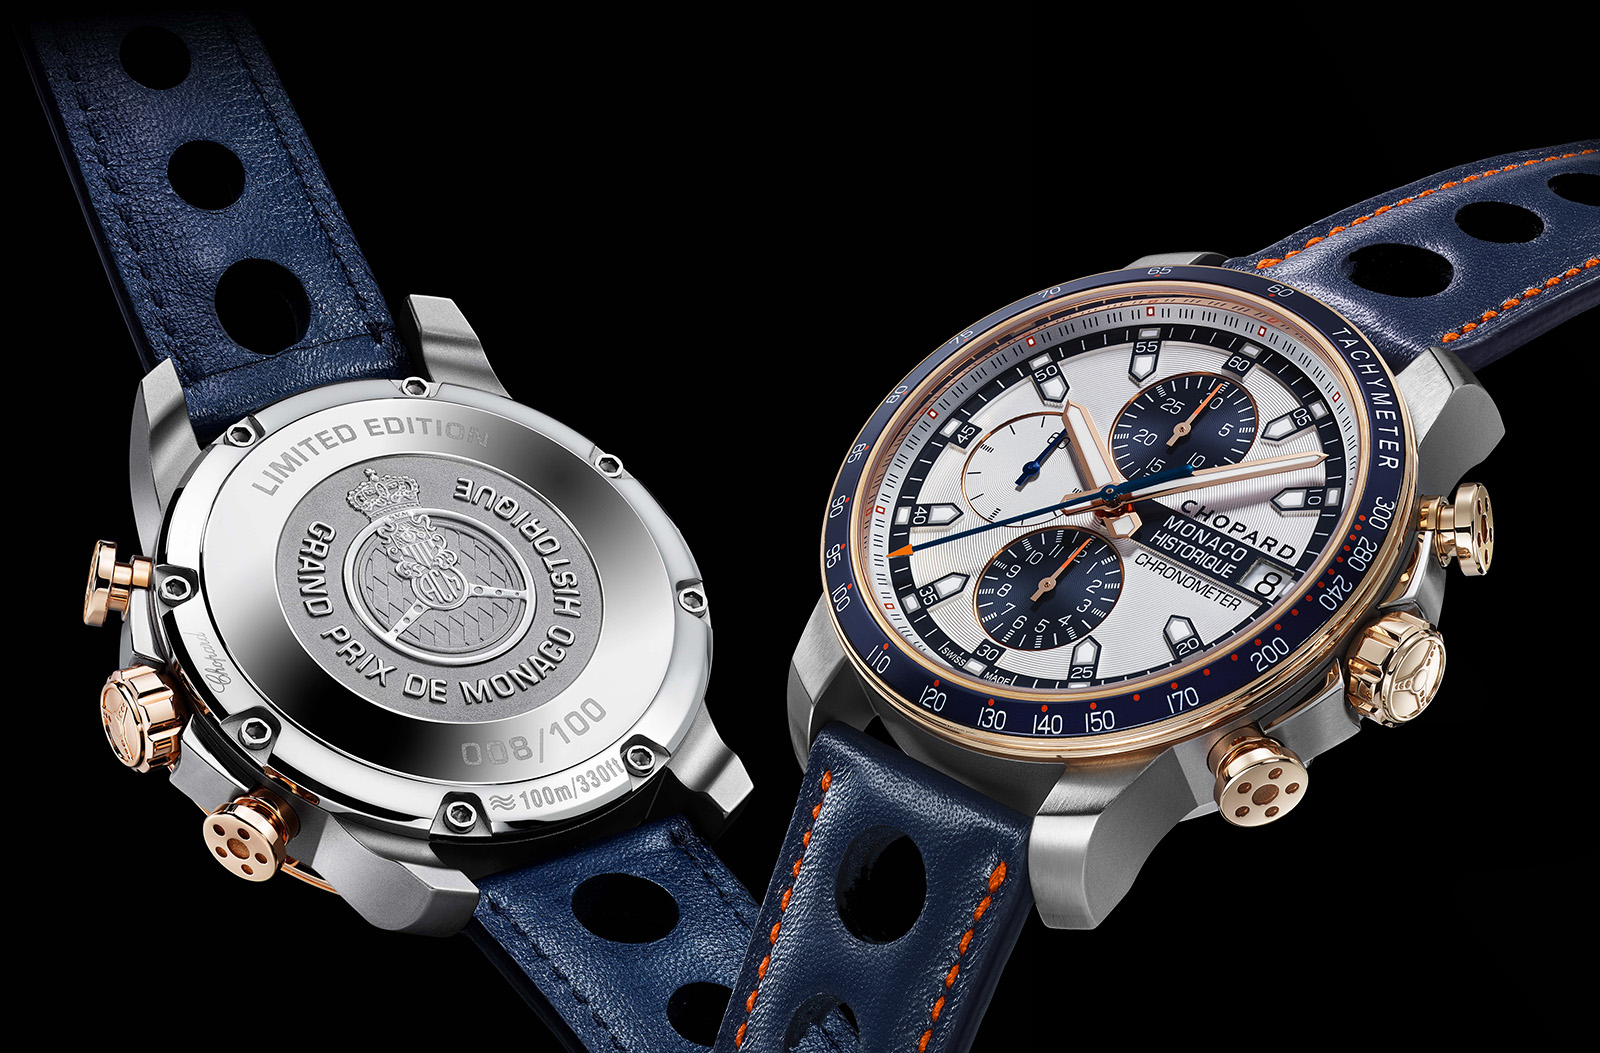 Chopard GPMH 2018 Race Edition